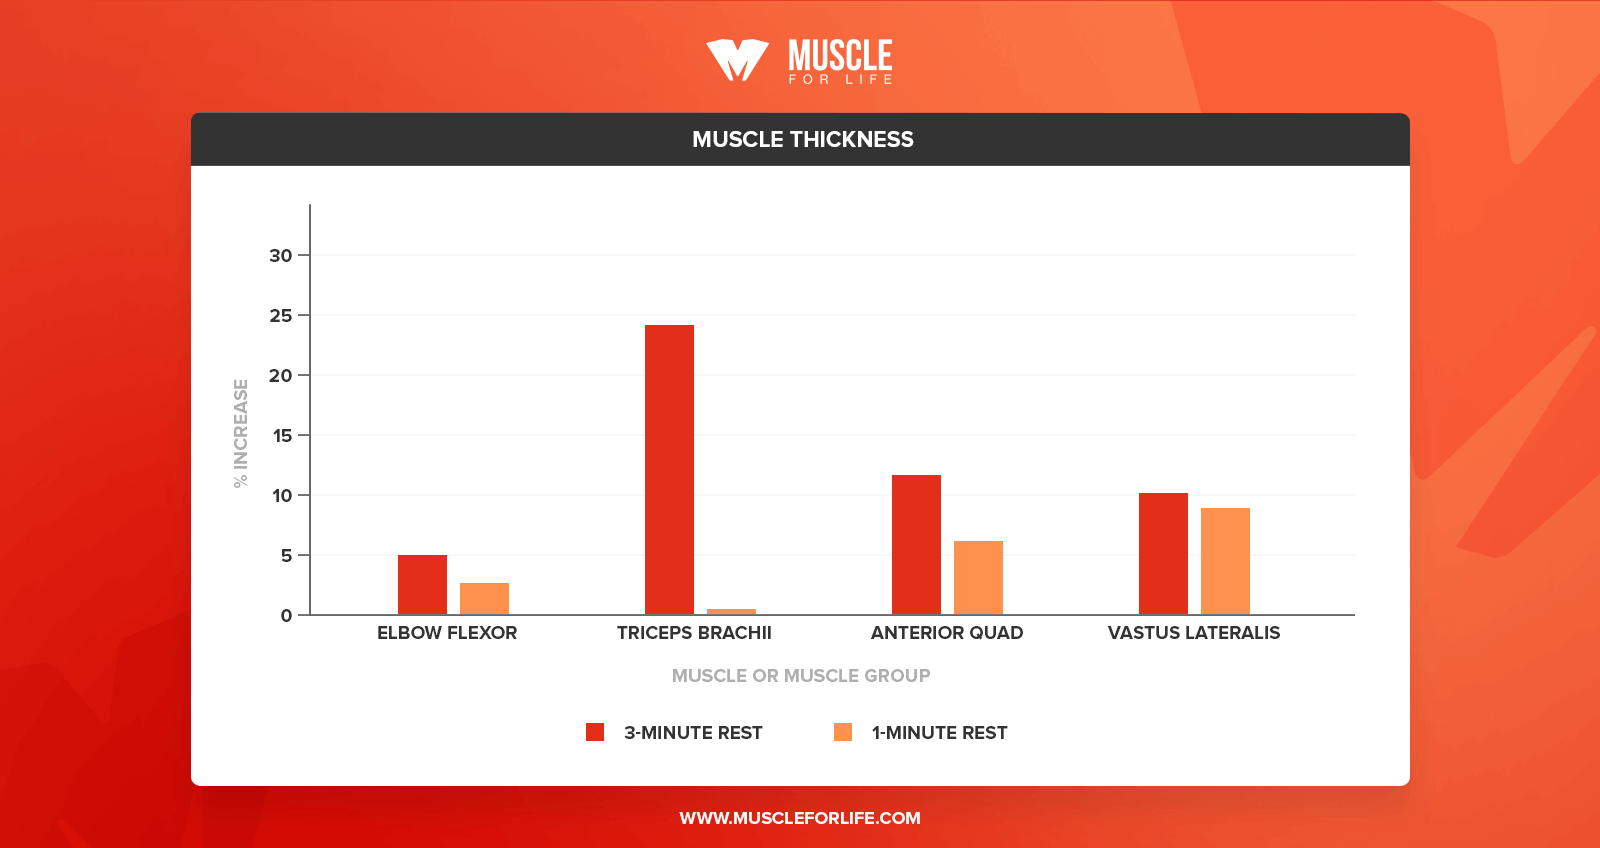 muscle thickness chart